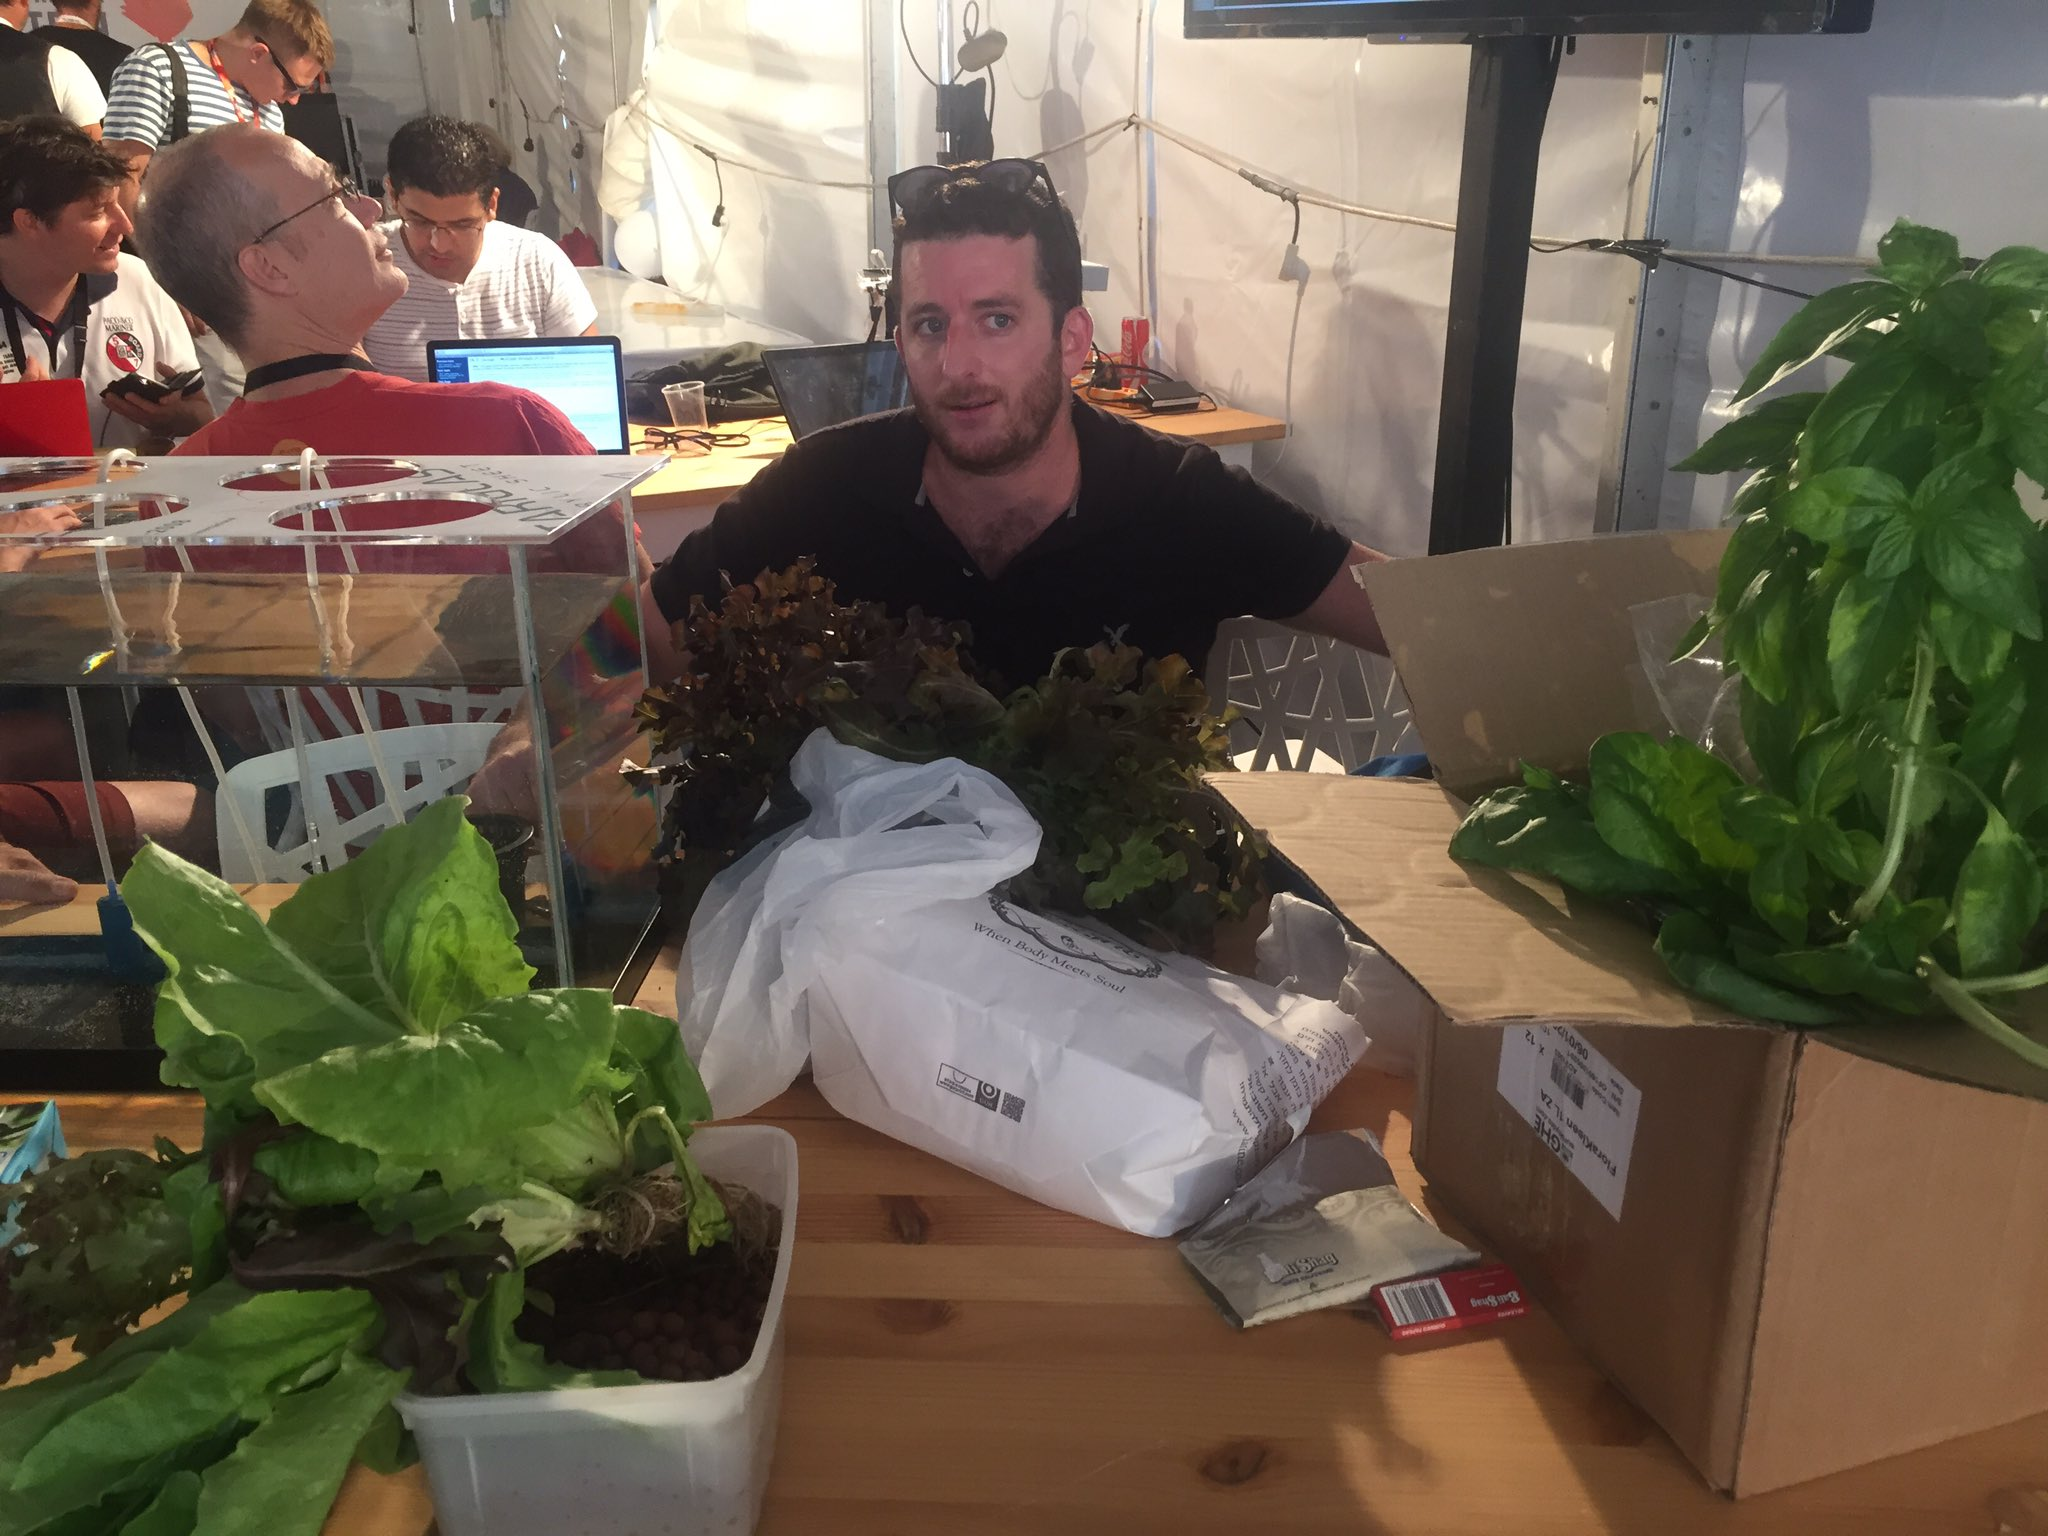 There is plants #green #IoT with @GroweeCo #hackdld @DLDTelAviv https://t.co/hSZYUhLFhk